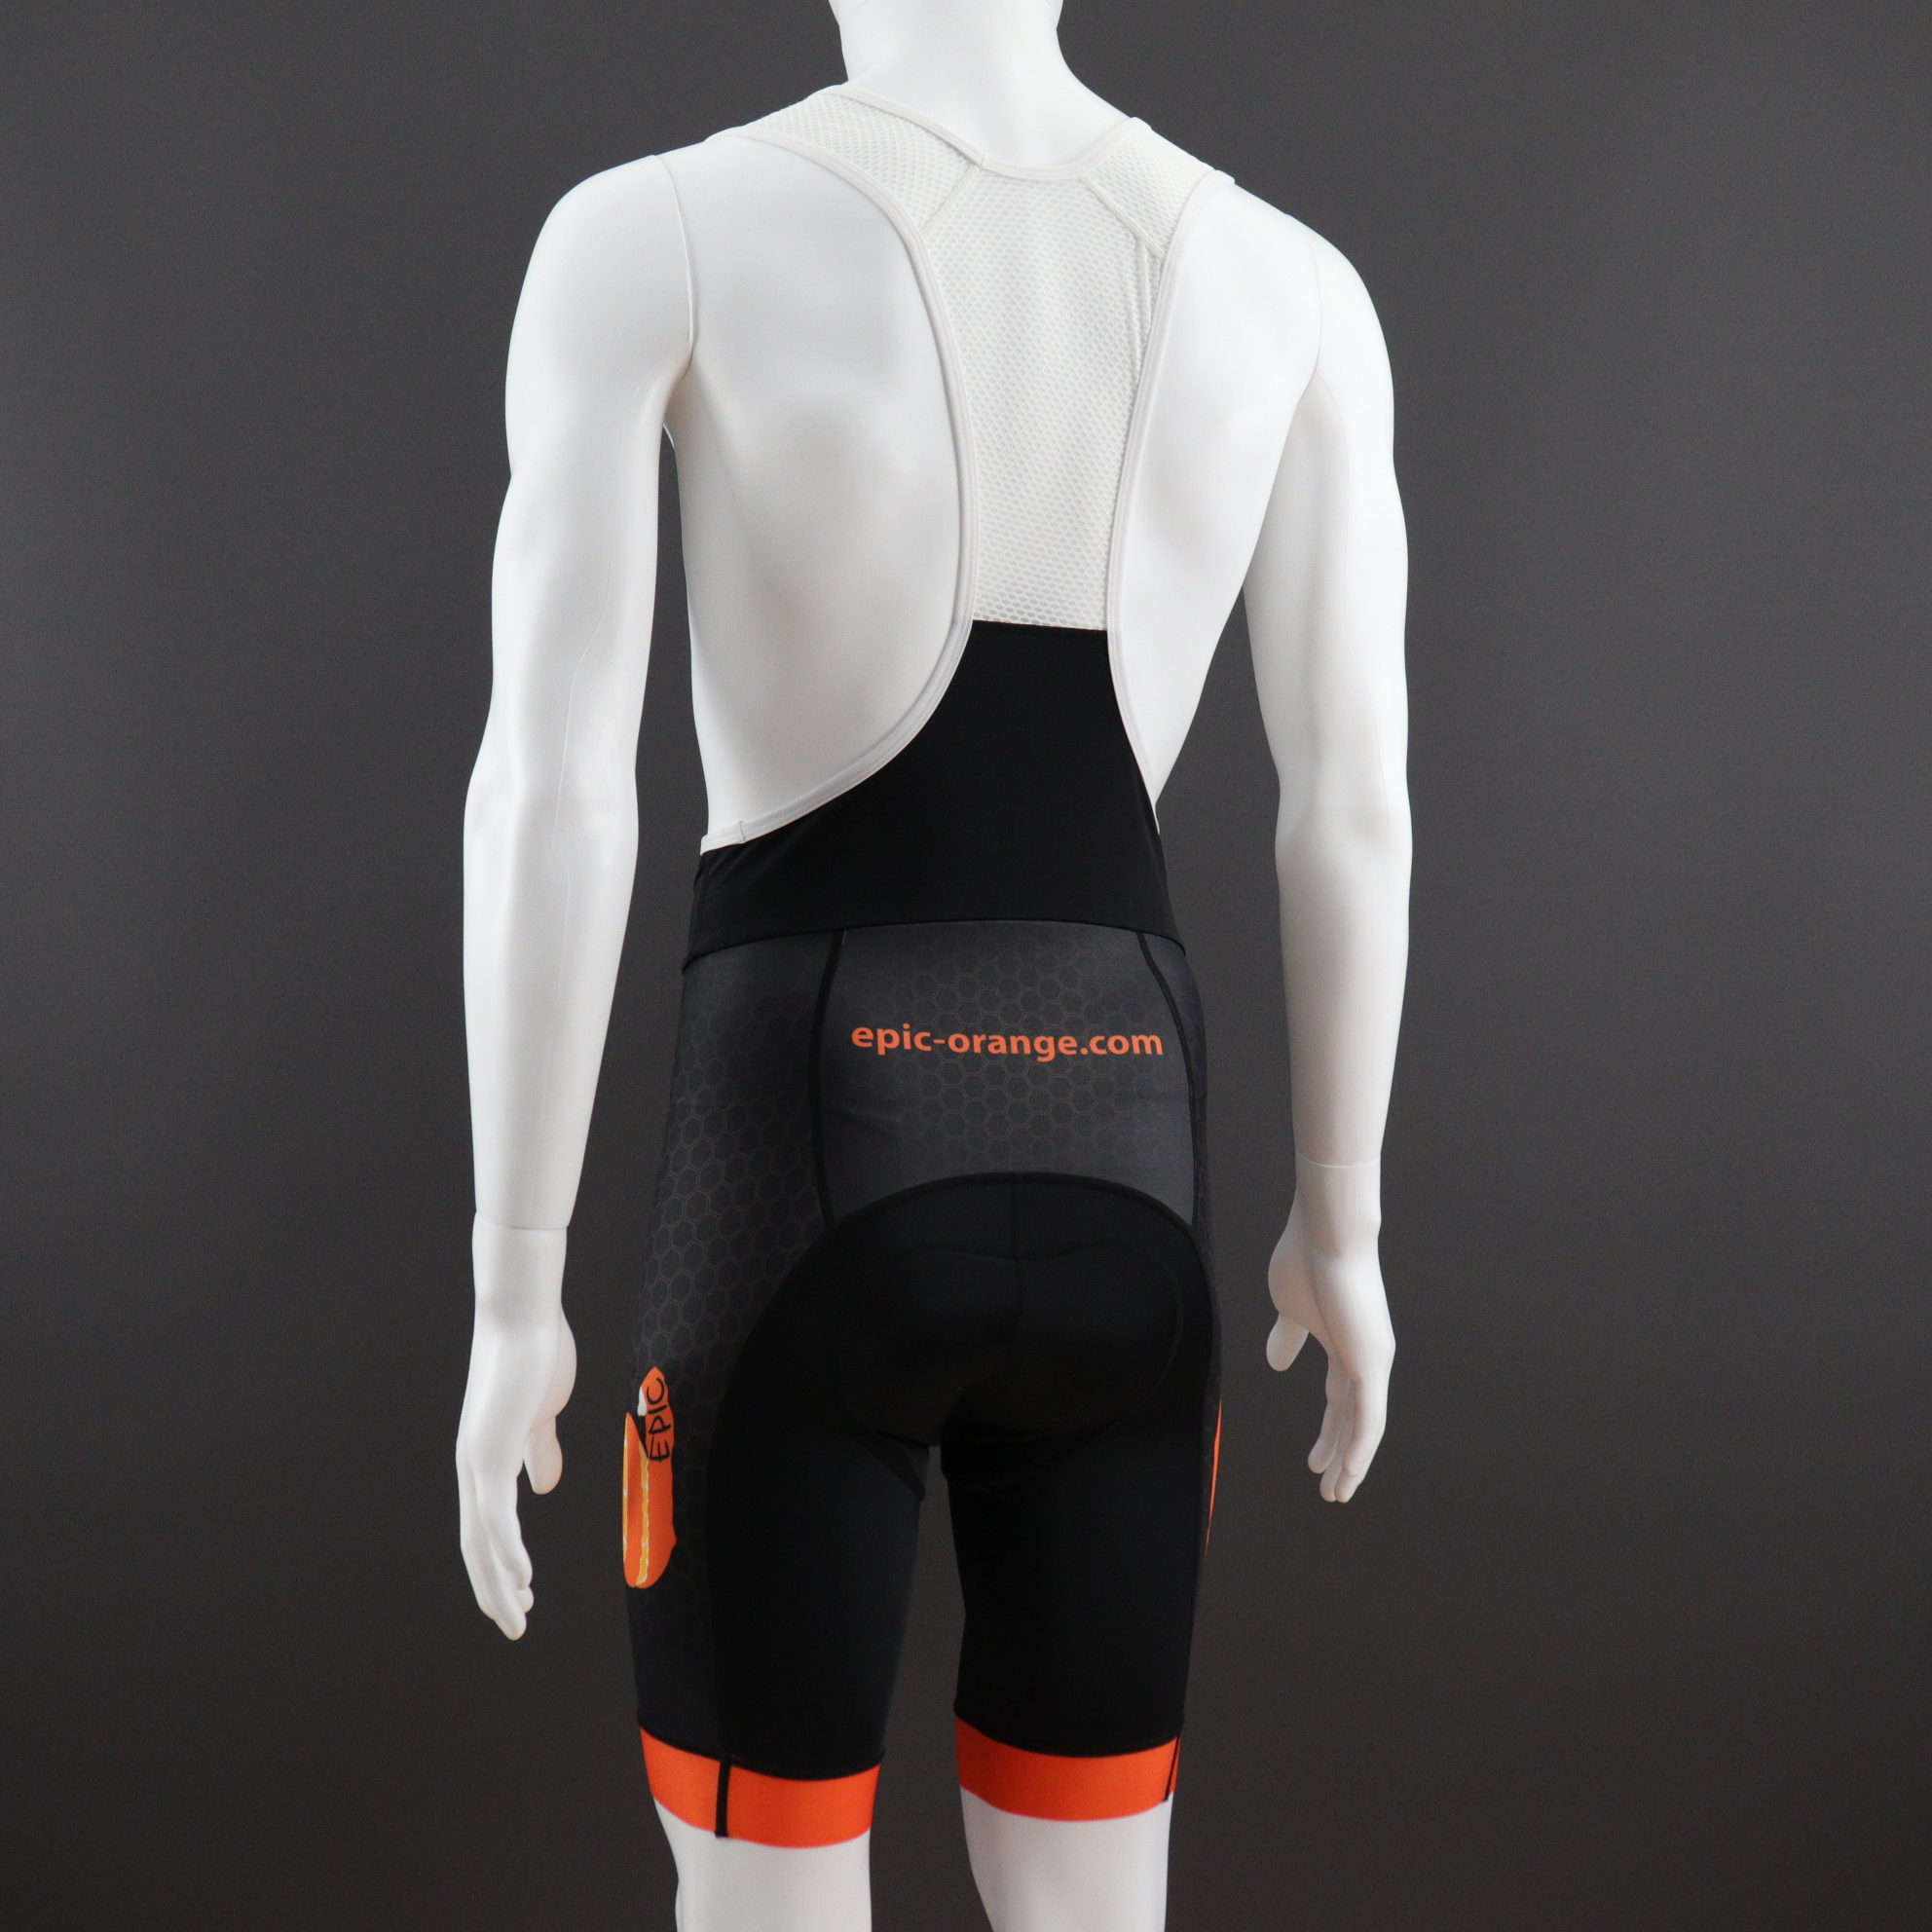 Custom Printed Pro Cycling Bib Shorts